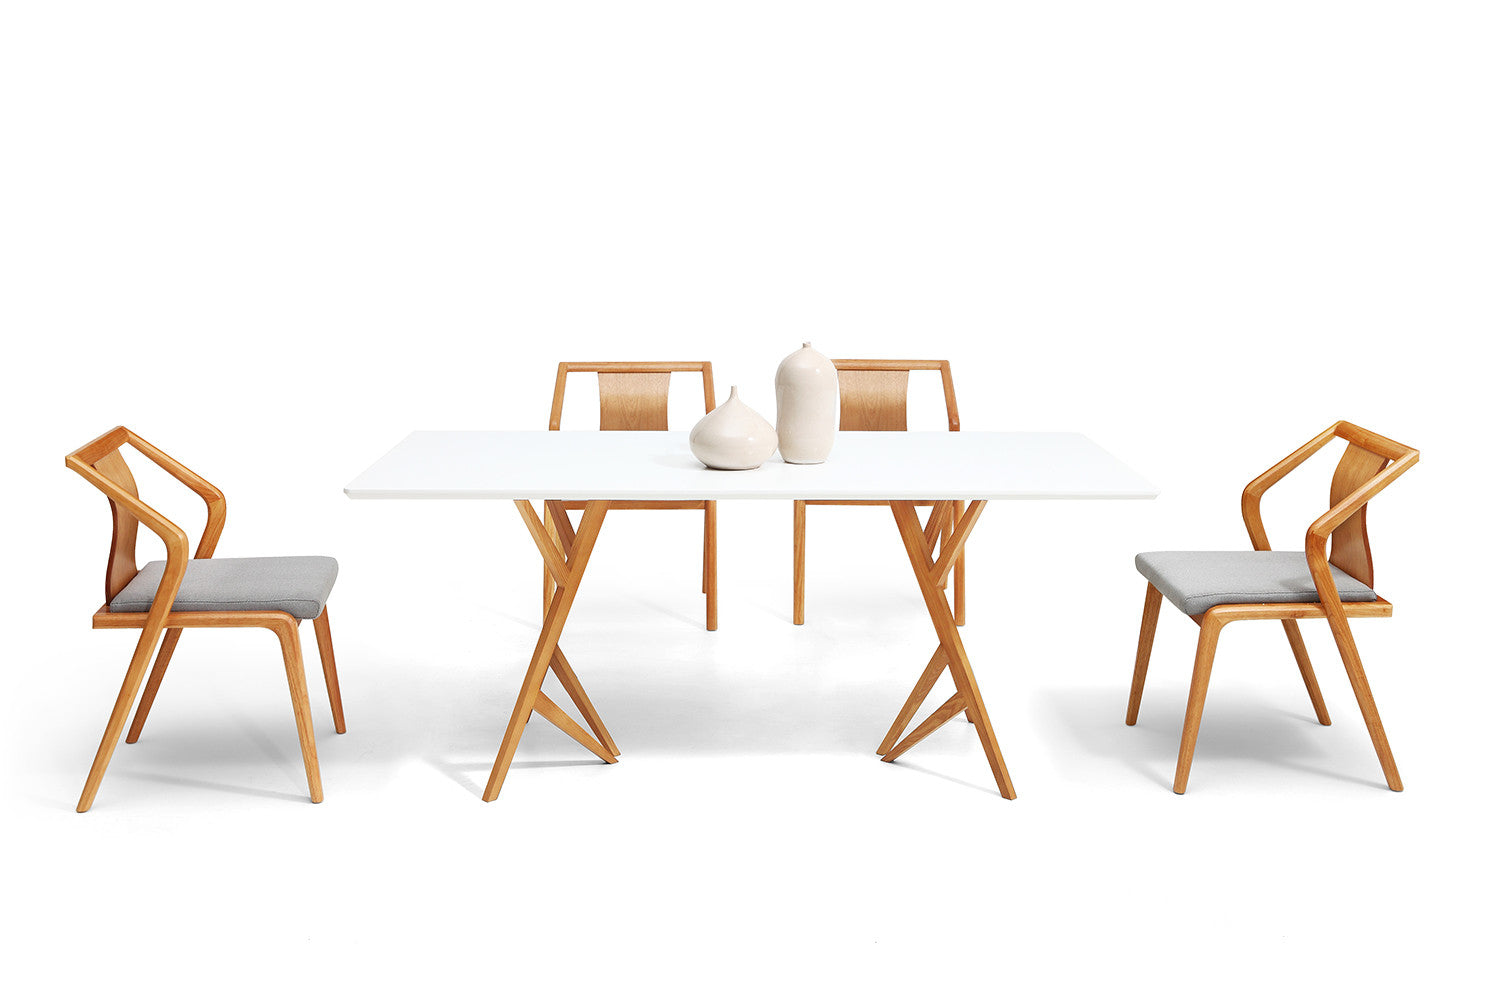 Table de salle manger design scandinave vispa dewarens for Solde table salle a manger